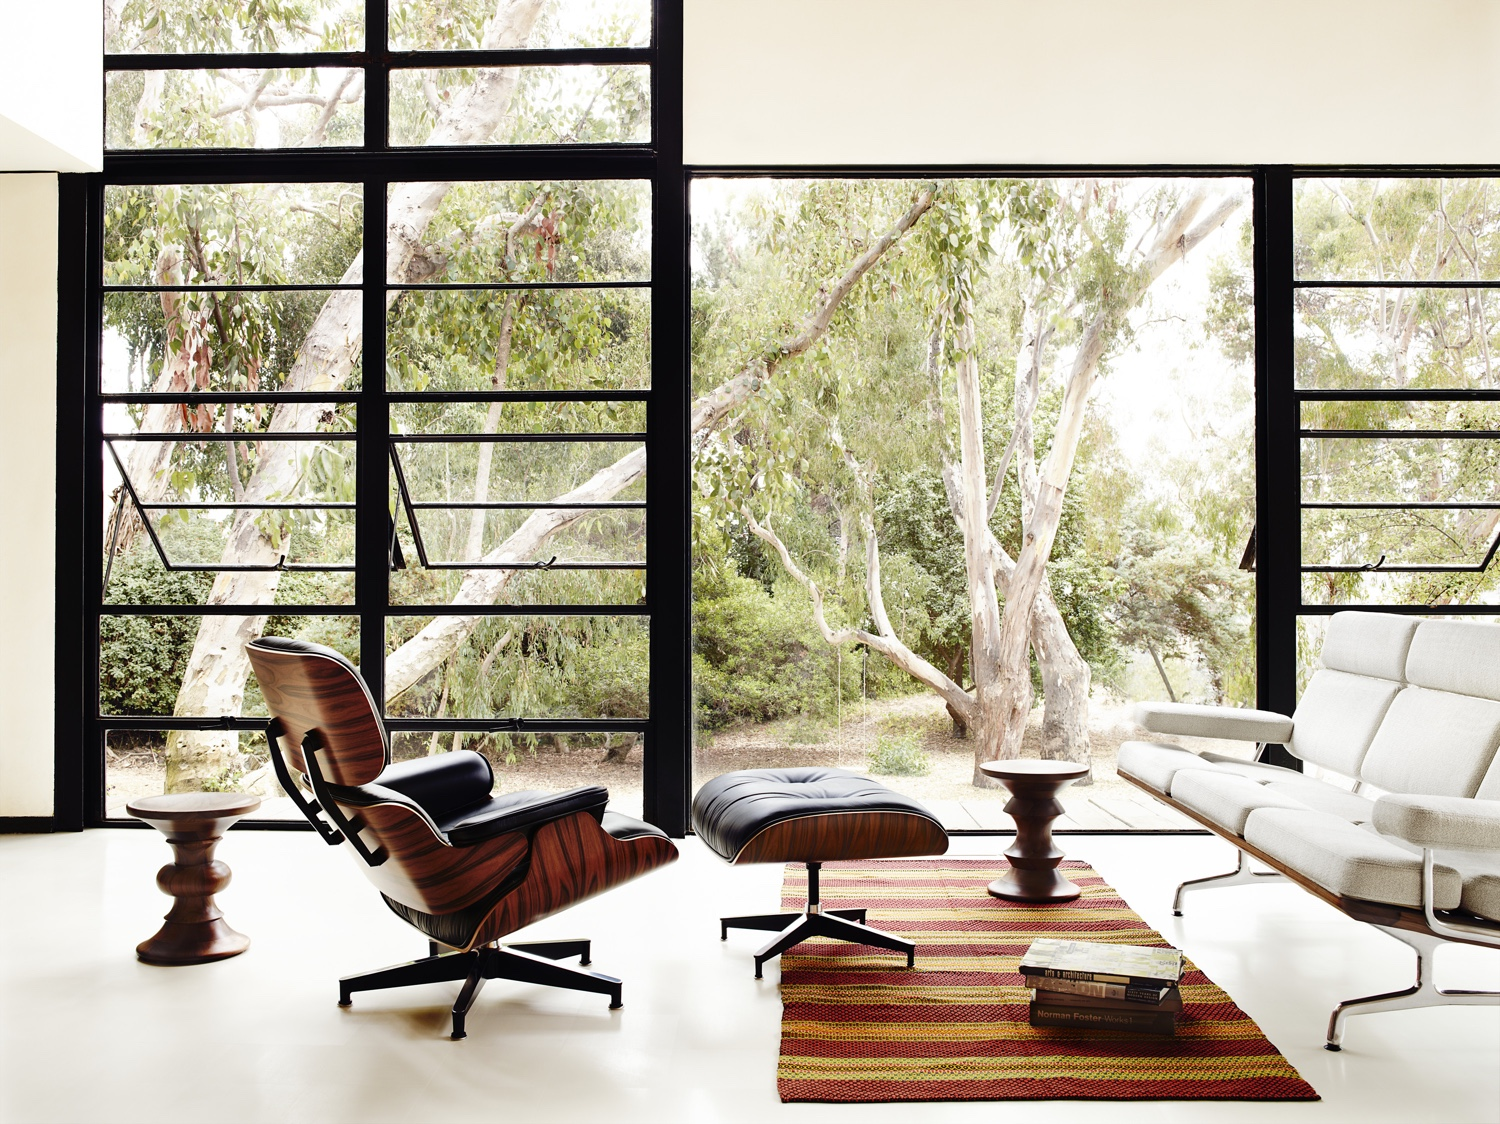 Classic EamesLounge Chair and Ottoman inblack leather.